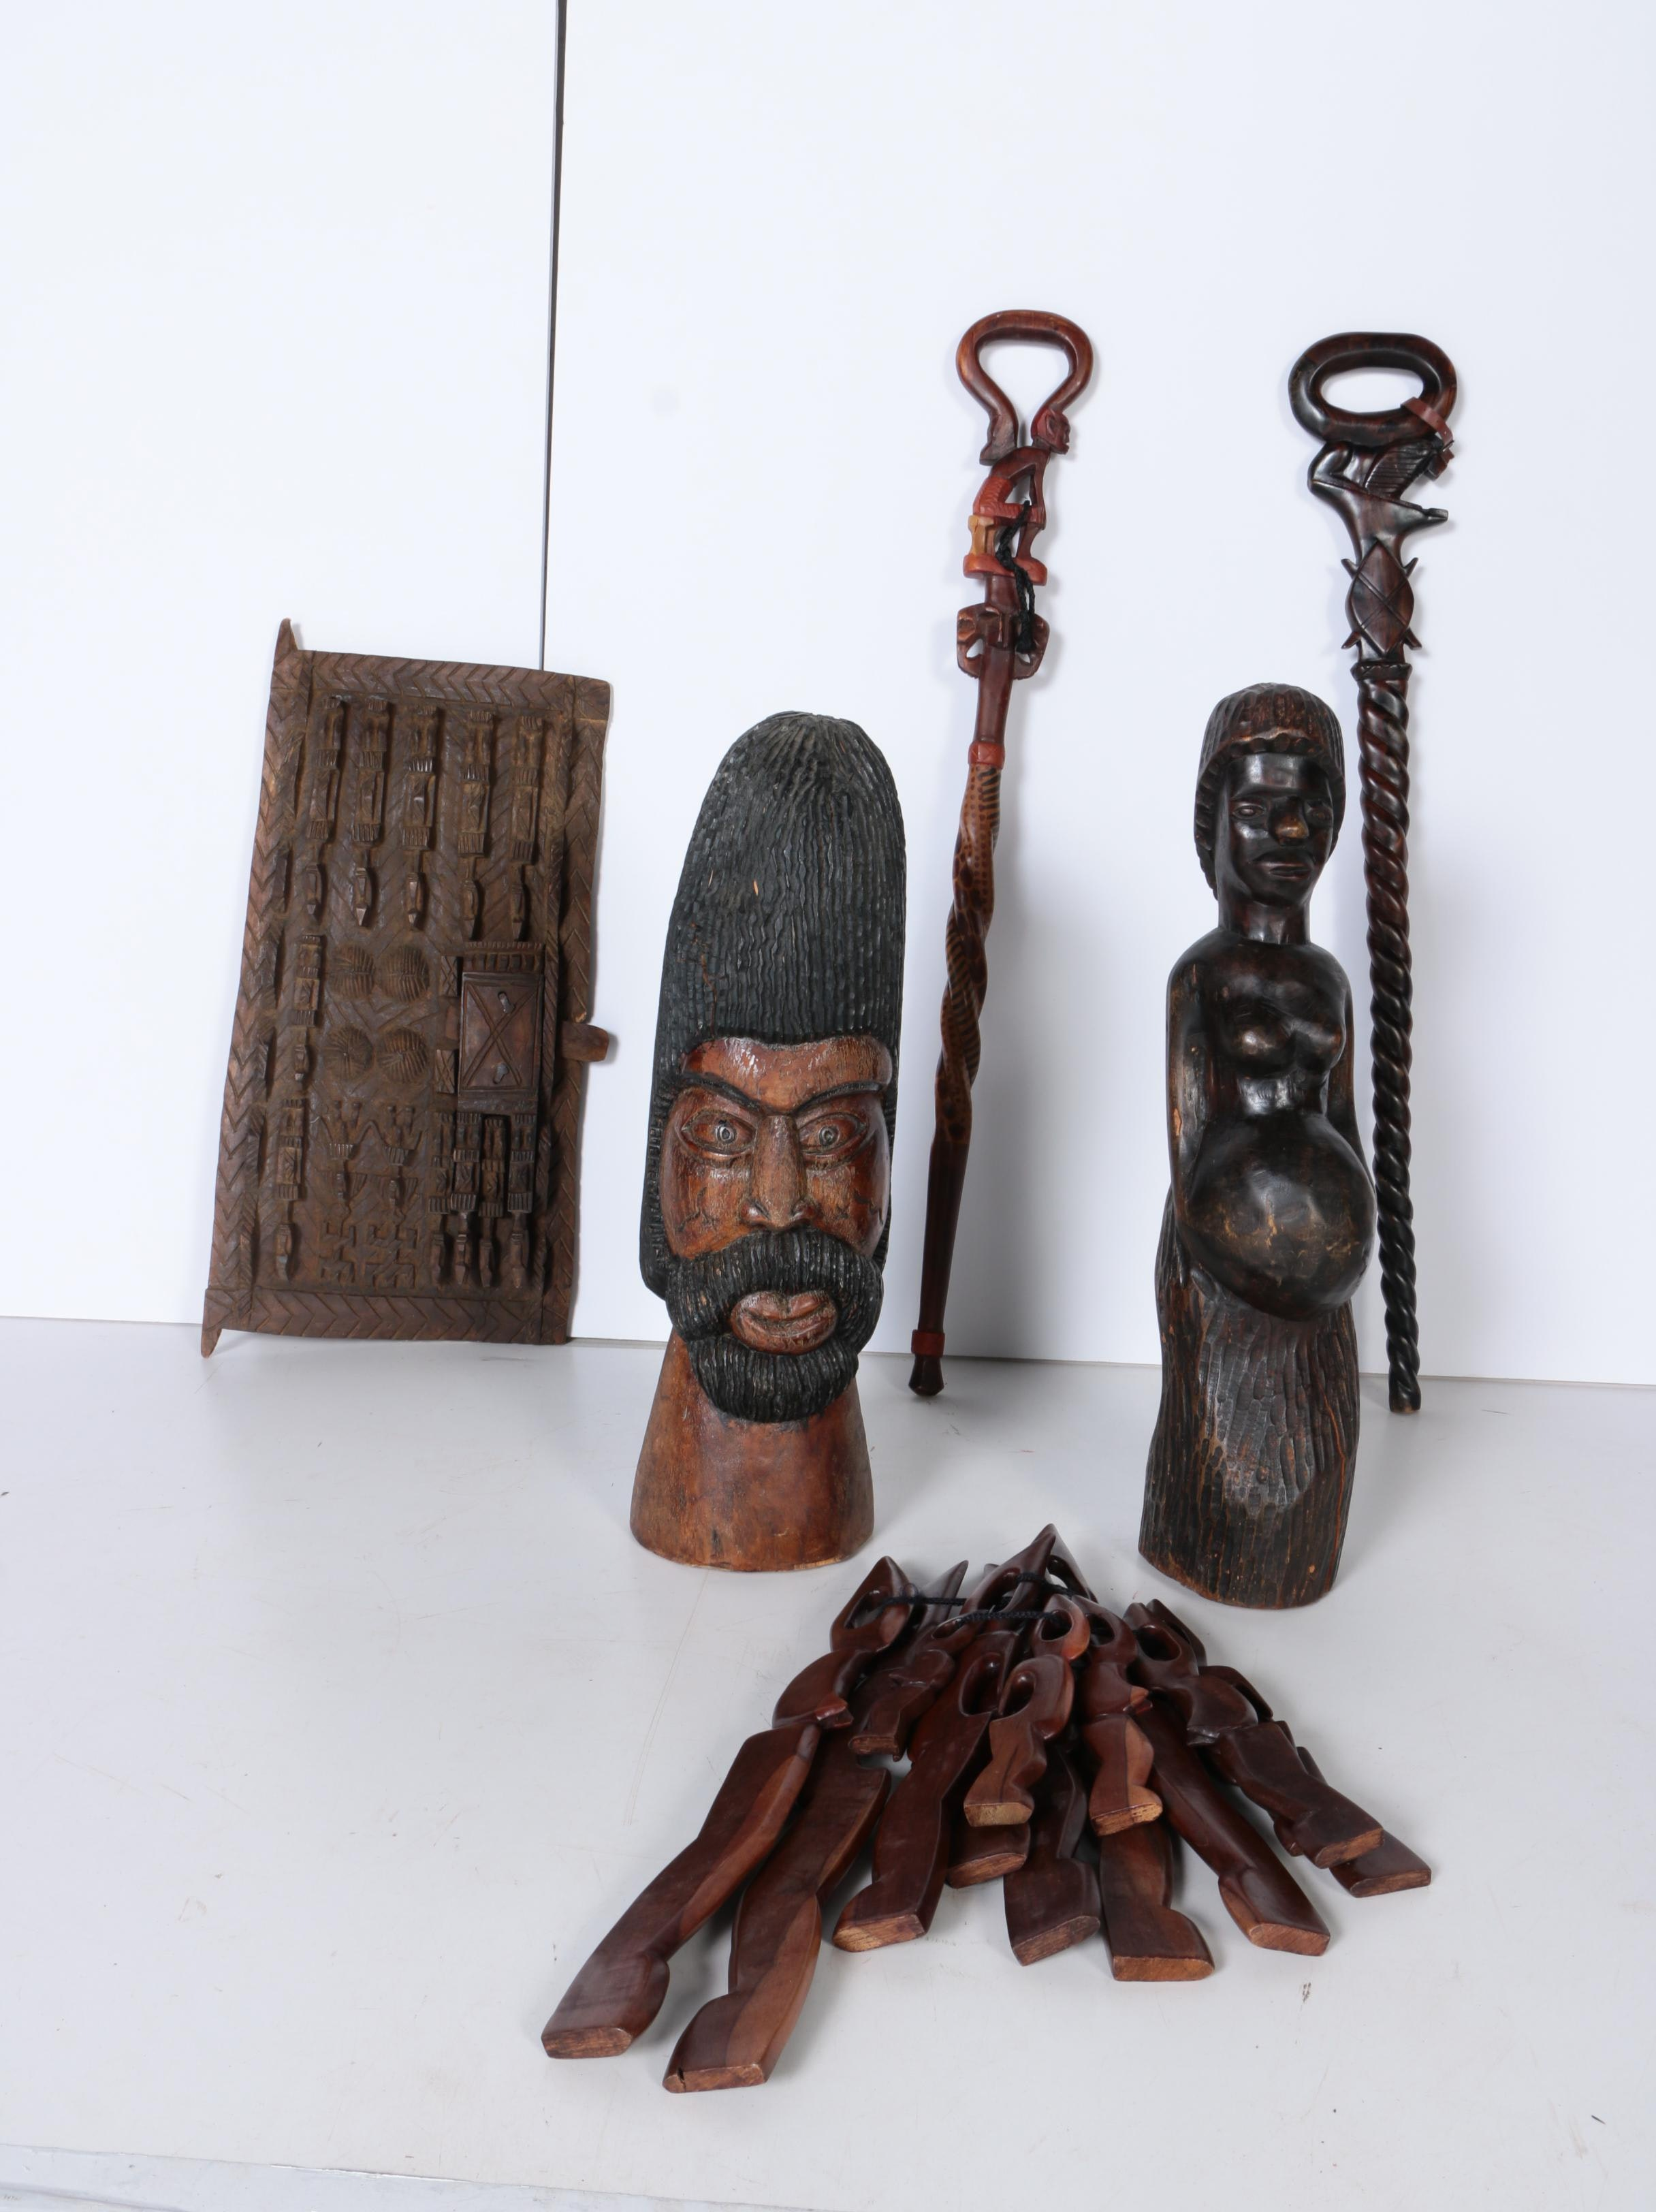 Carved Wood Sculptures, Figurines, Kenyan Style Staffs and Plaque